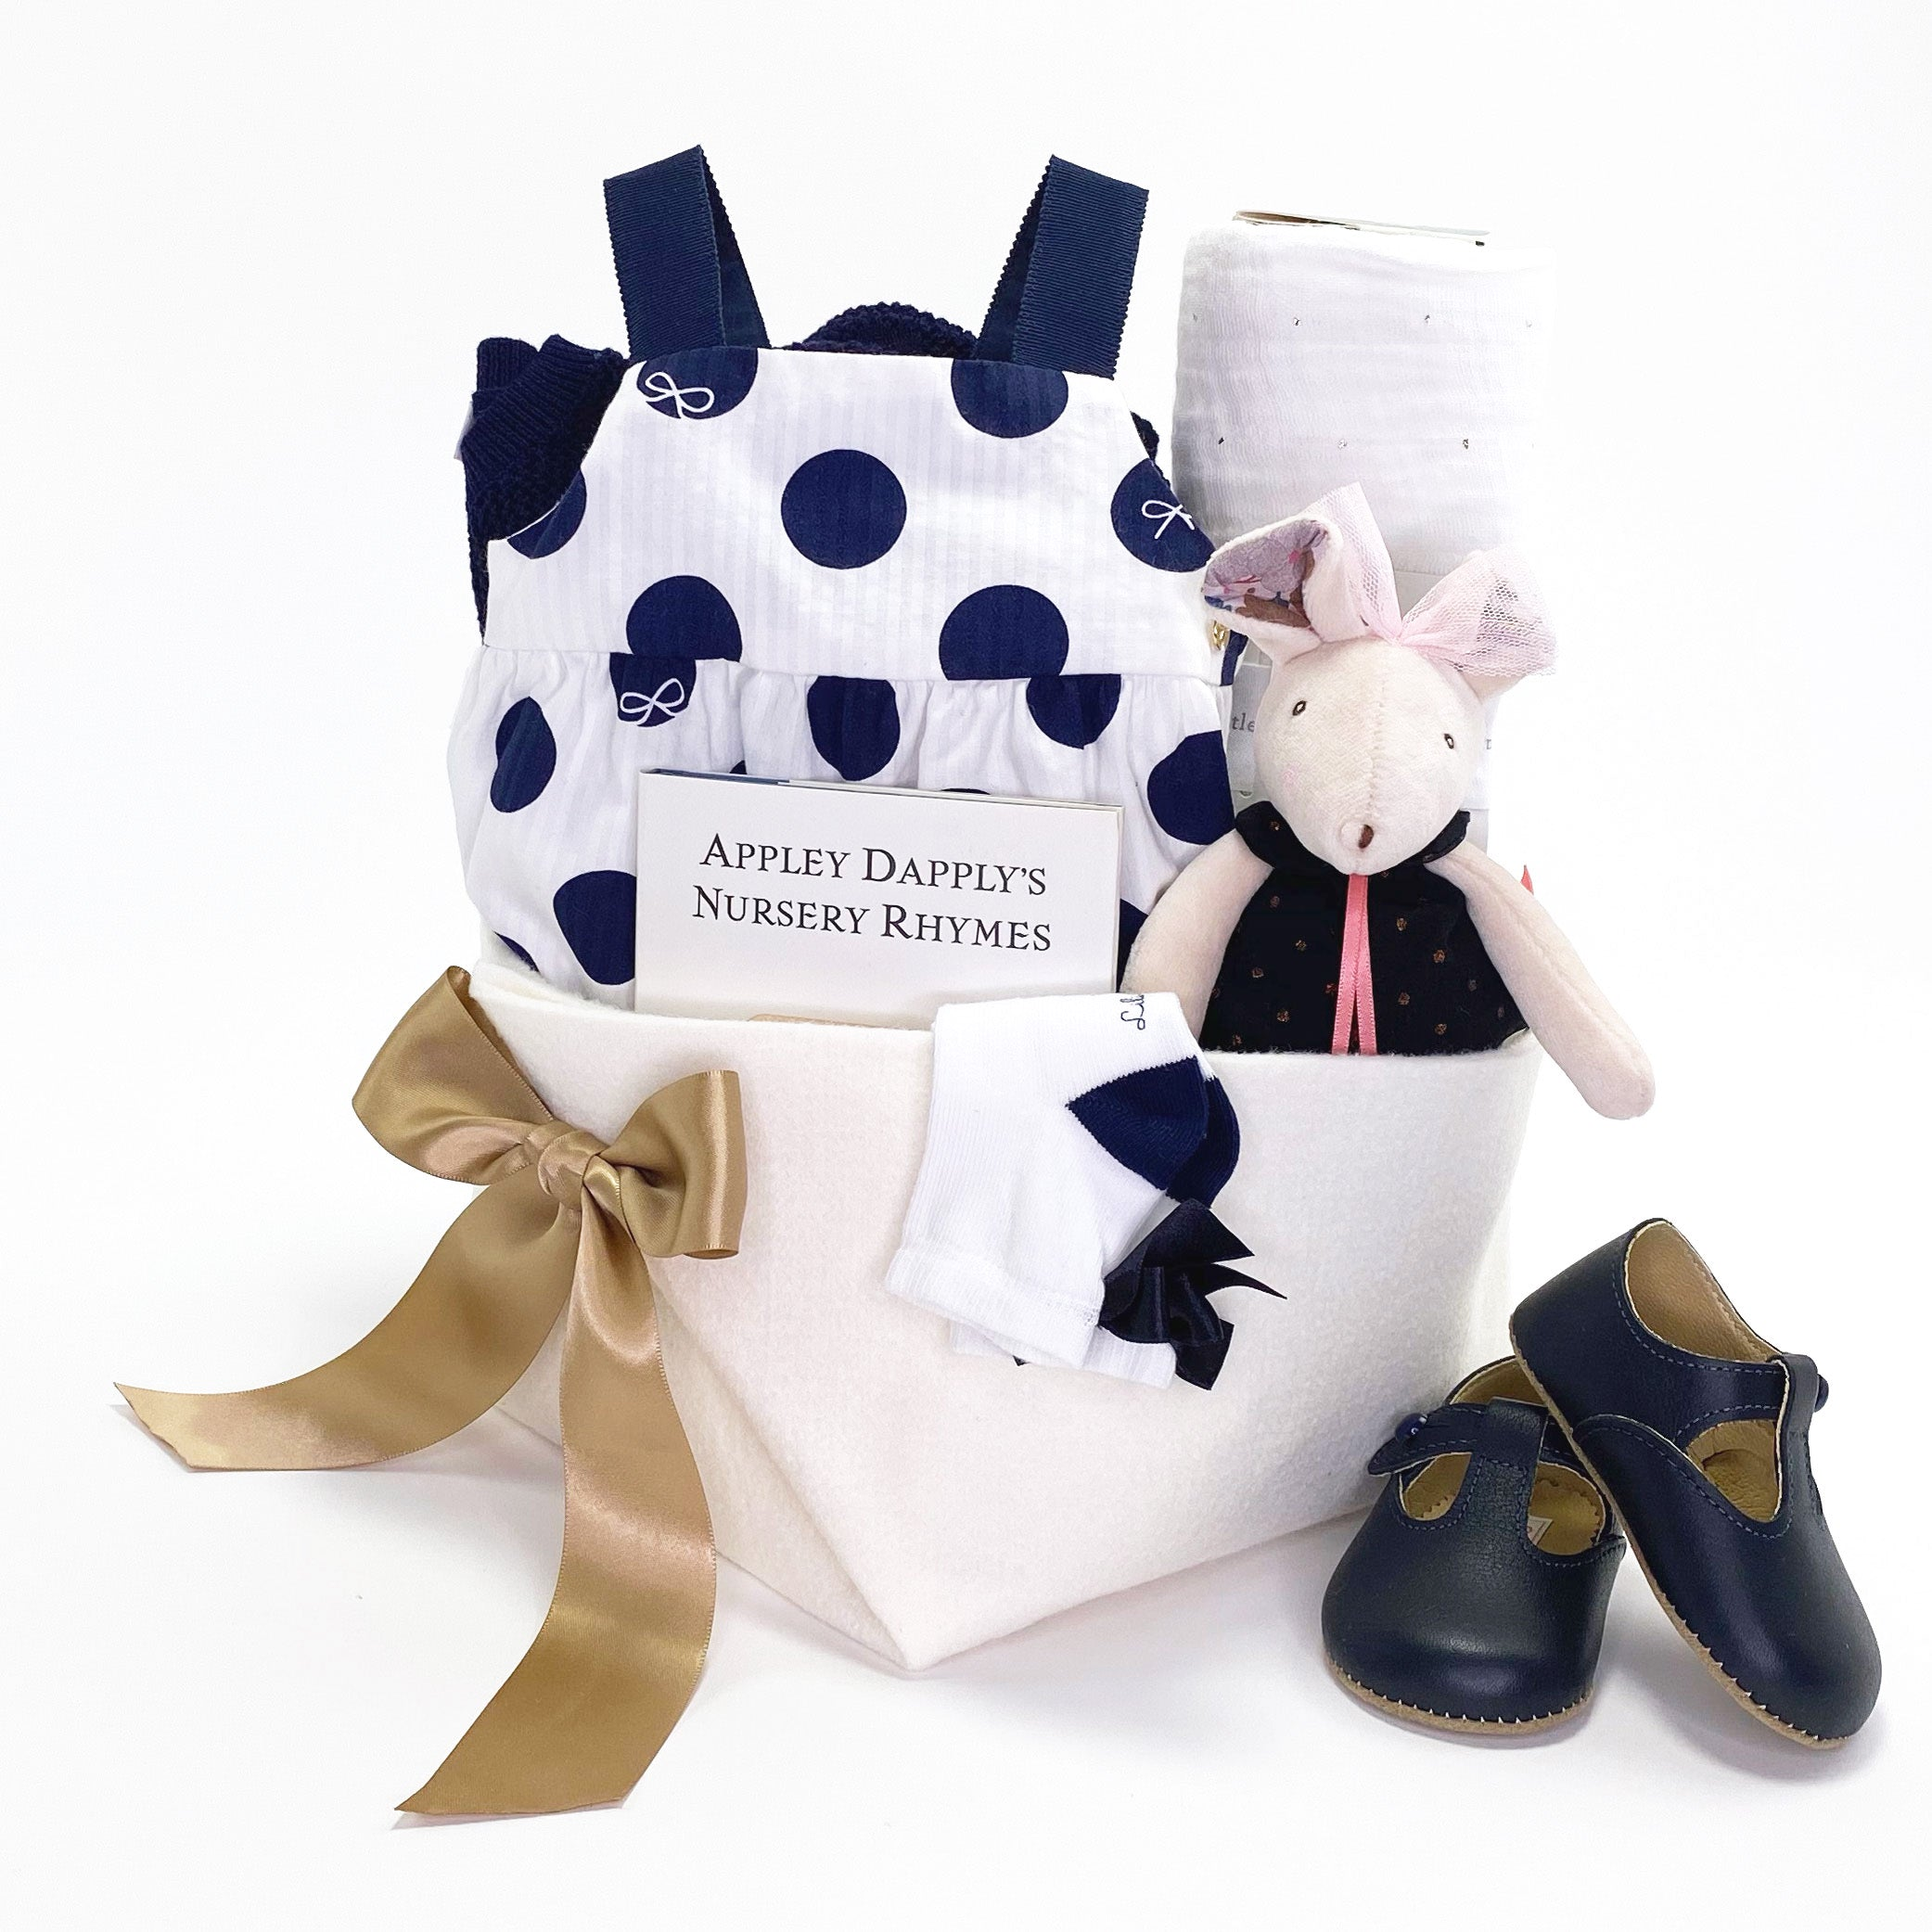 Luxury Baby Girl Gift Basket at Bonjour Baby Baskets featuring Lili Gaufrette